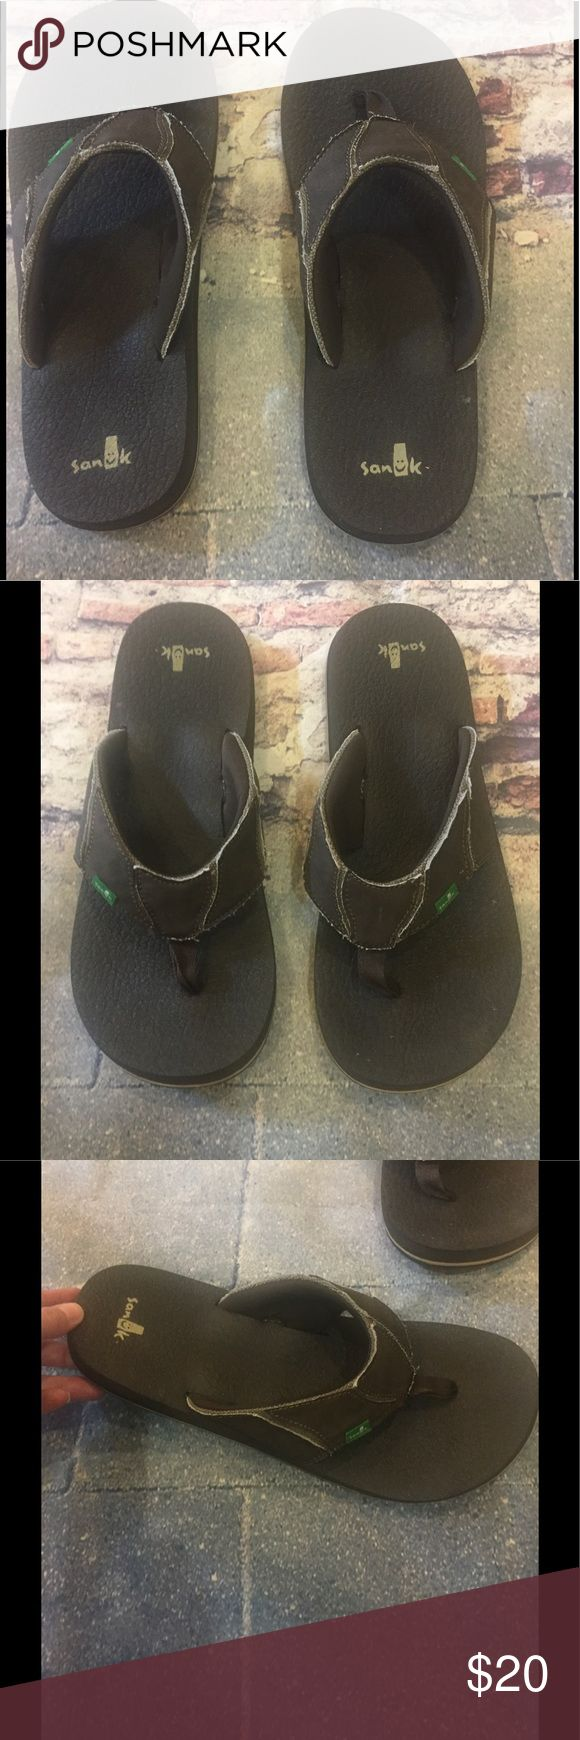 Men's Chocolate Sanuk Flip Flops, size 12!!! EUC!!! Men's Sanuk Flip Flops, size 12!!! Chocolate Fault Line! Only worn once!!! Made from yoga mats, very soft and squishy 😉😉😉 Sanuk Shoes Sandals & Flip-Flops